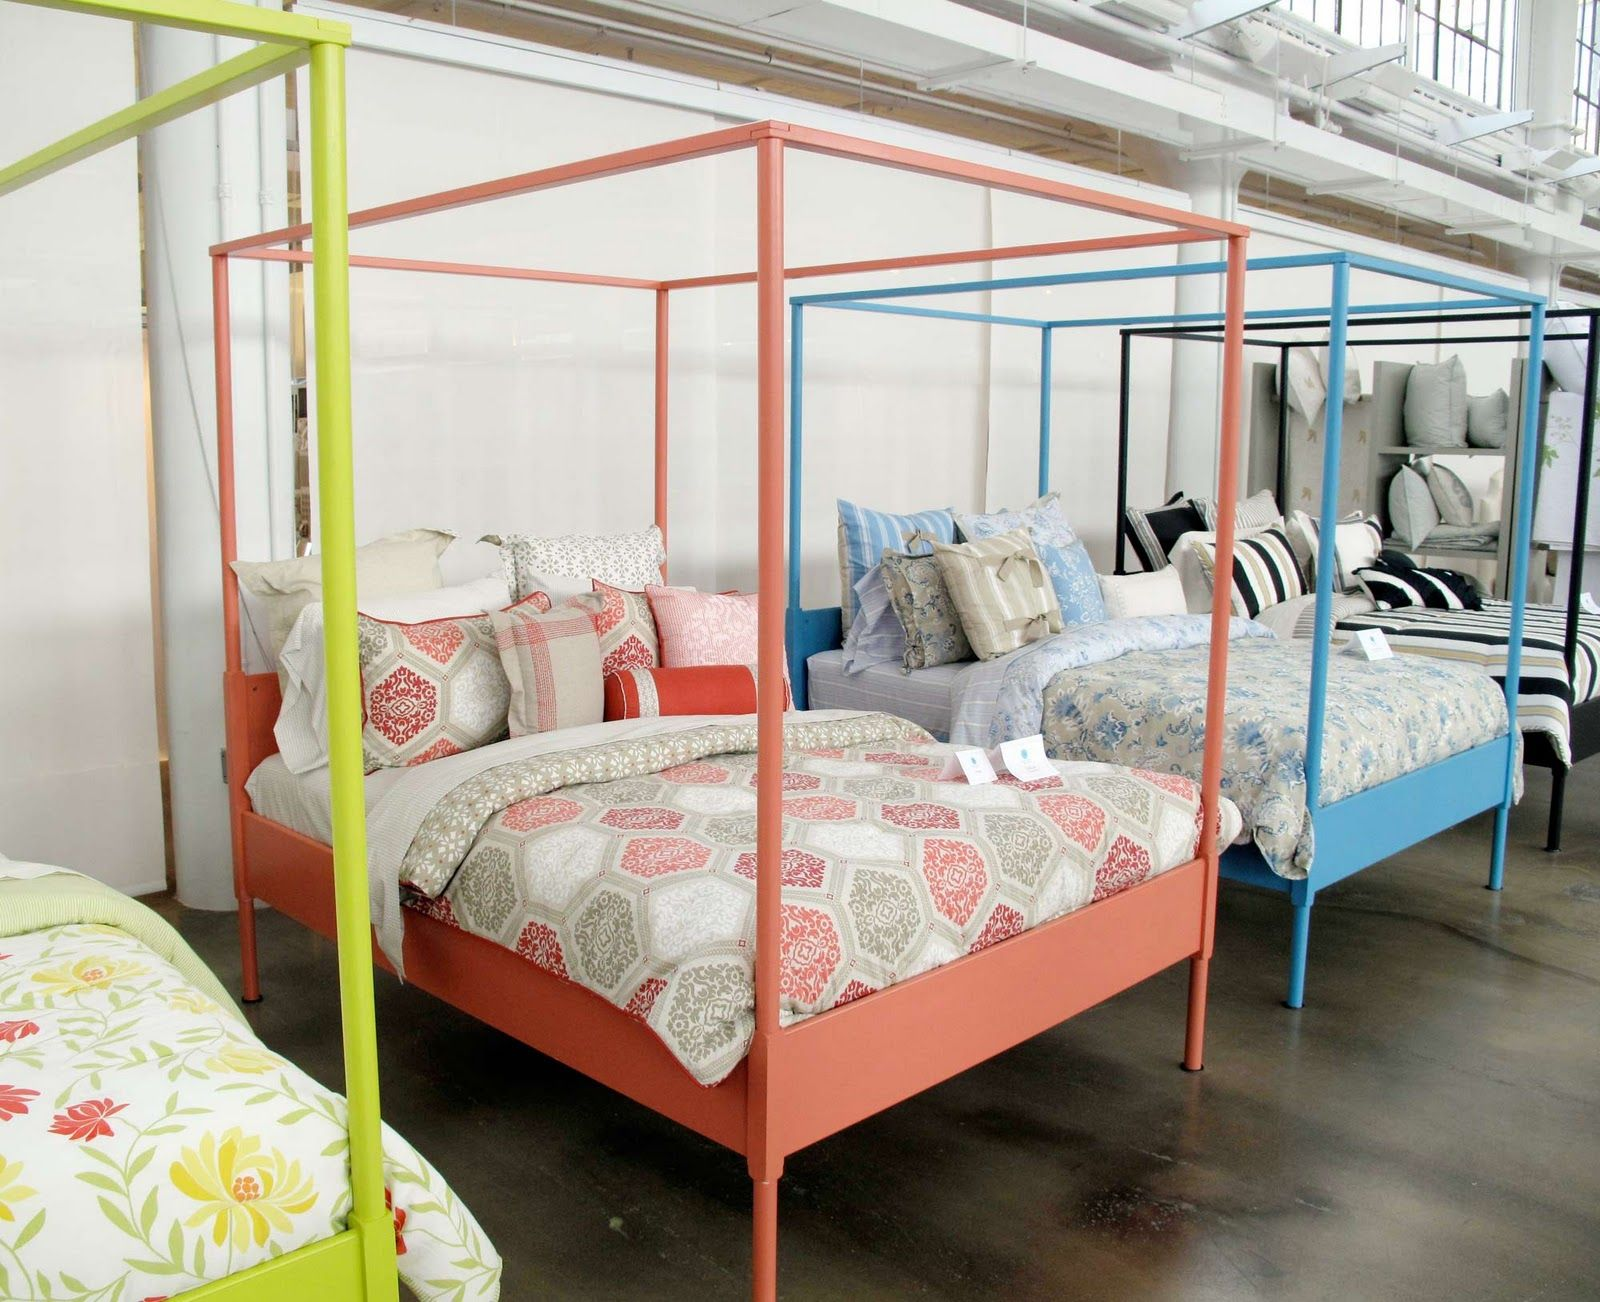 Best Ikea canopy bed ideas on Pinterest